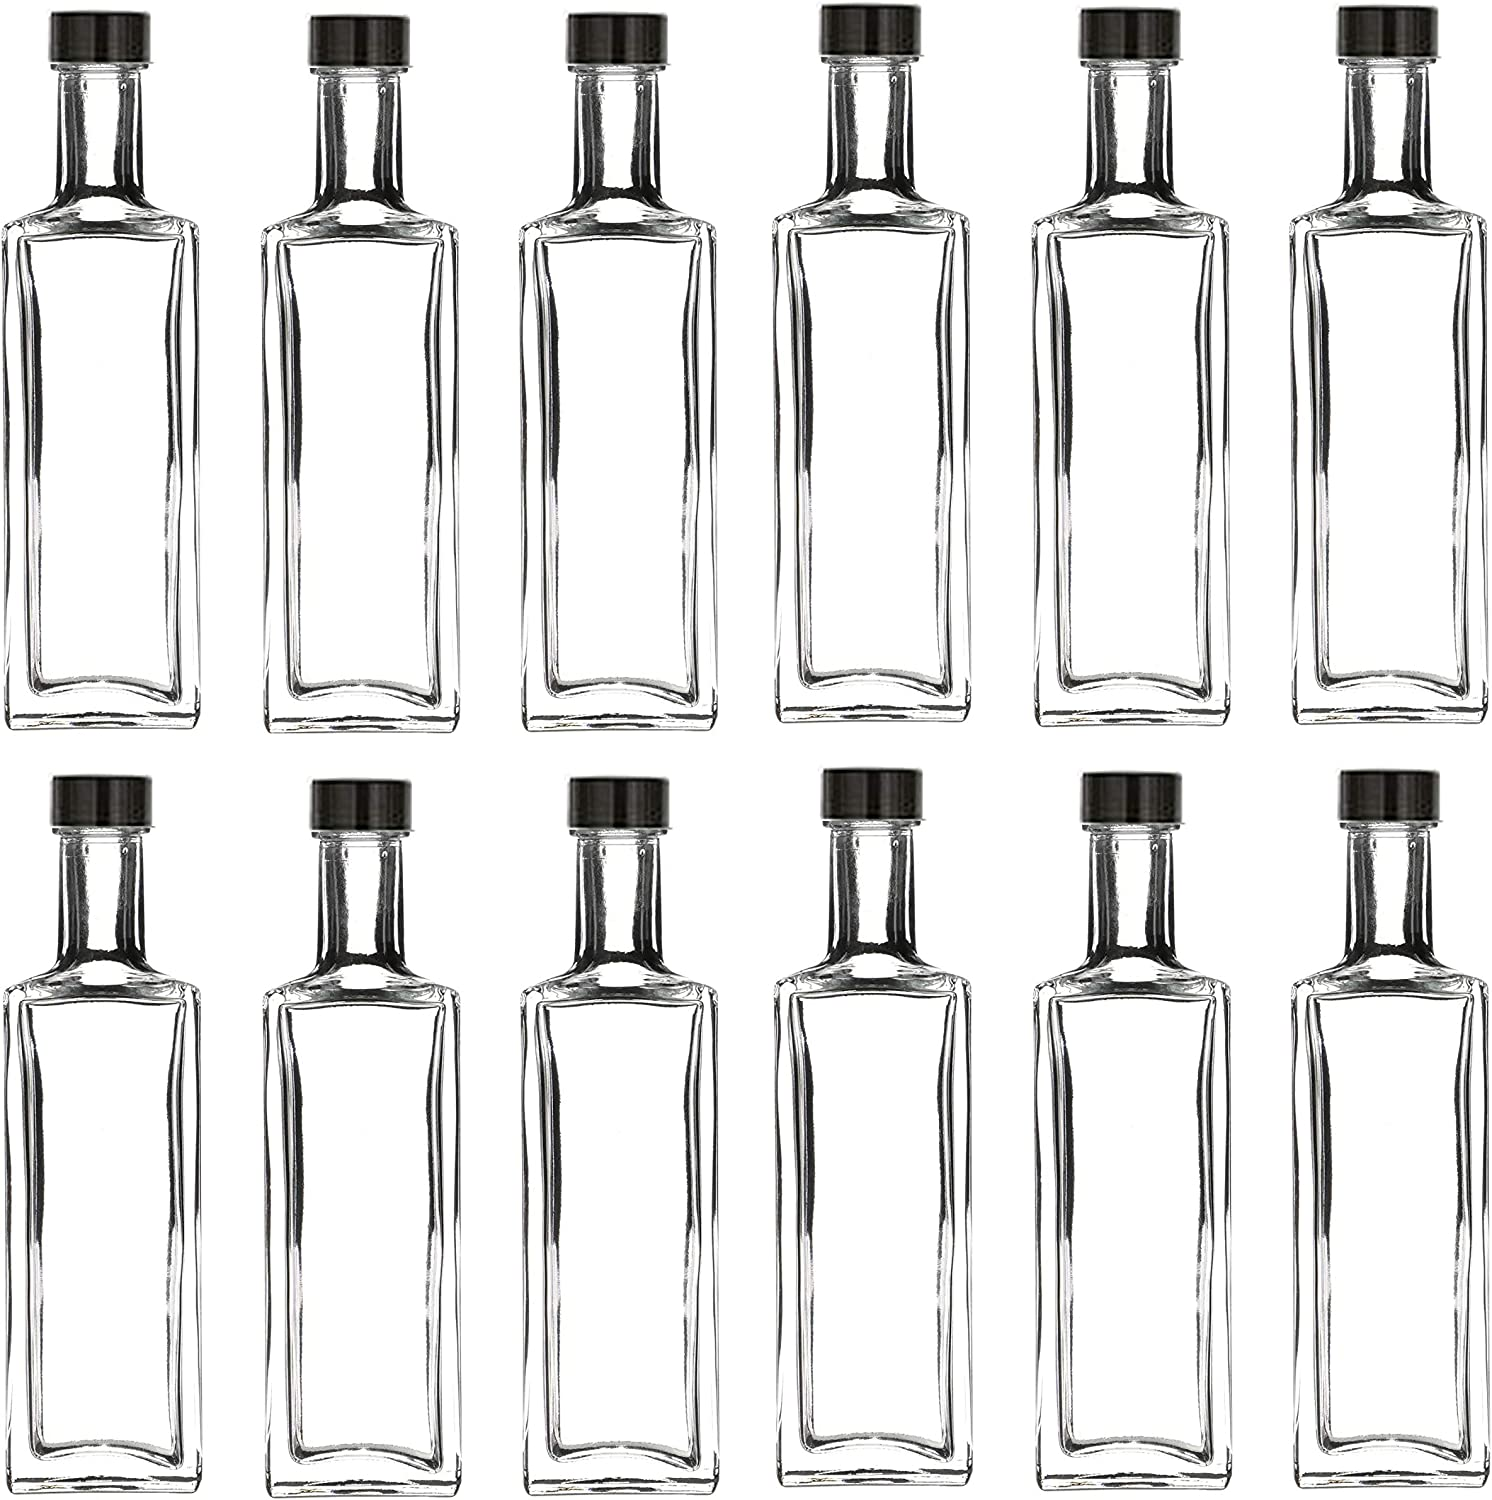 Nakpunar 12 pcs 50 ml Mini Glass Liquor Bottles with Caps, Made in the USA (12, Black - Liberty)